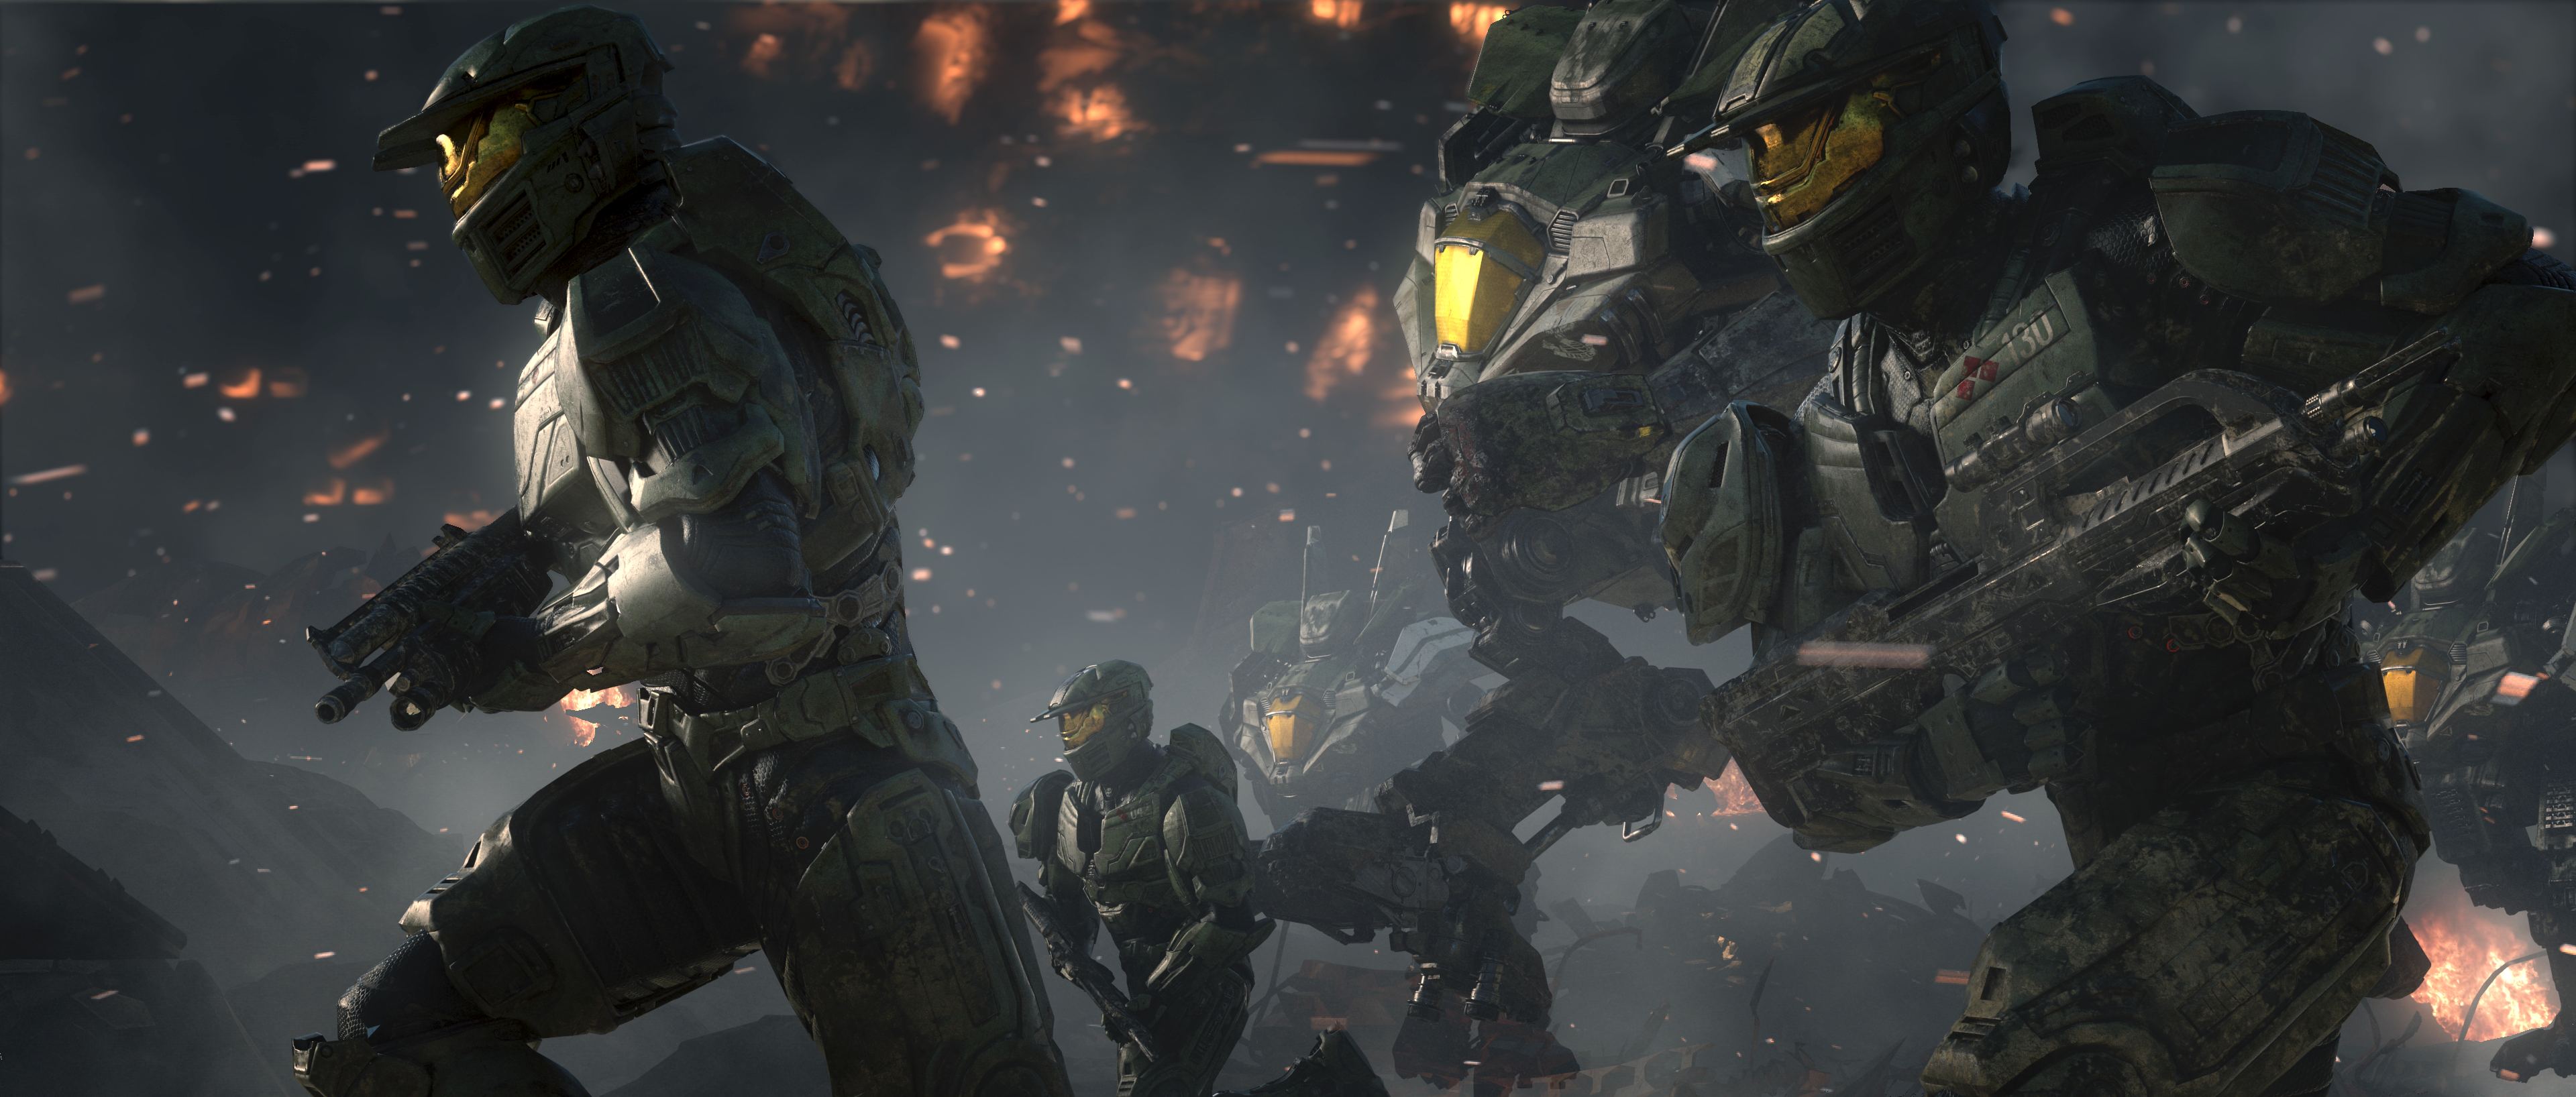 16 Halo Wars 2 Hd Wallpapers Background Images Wallpaper Abyss